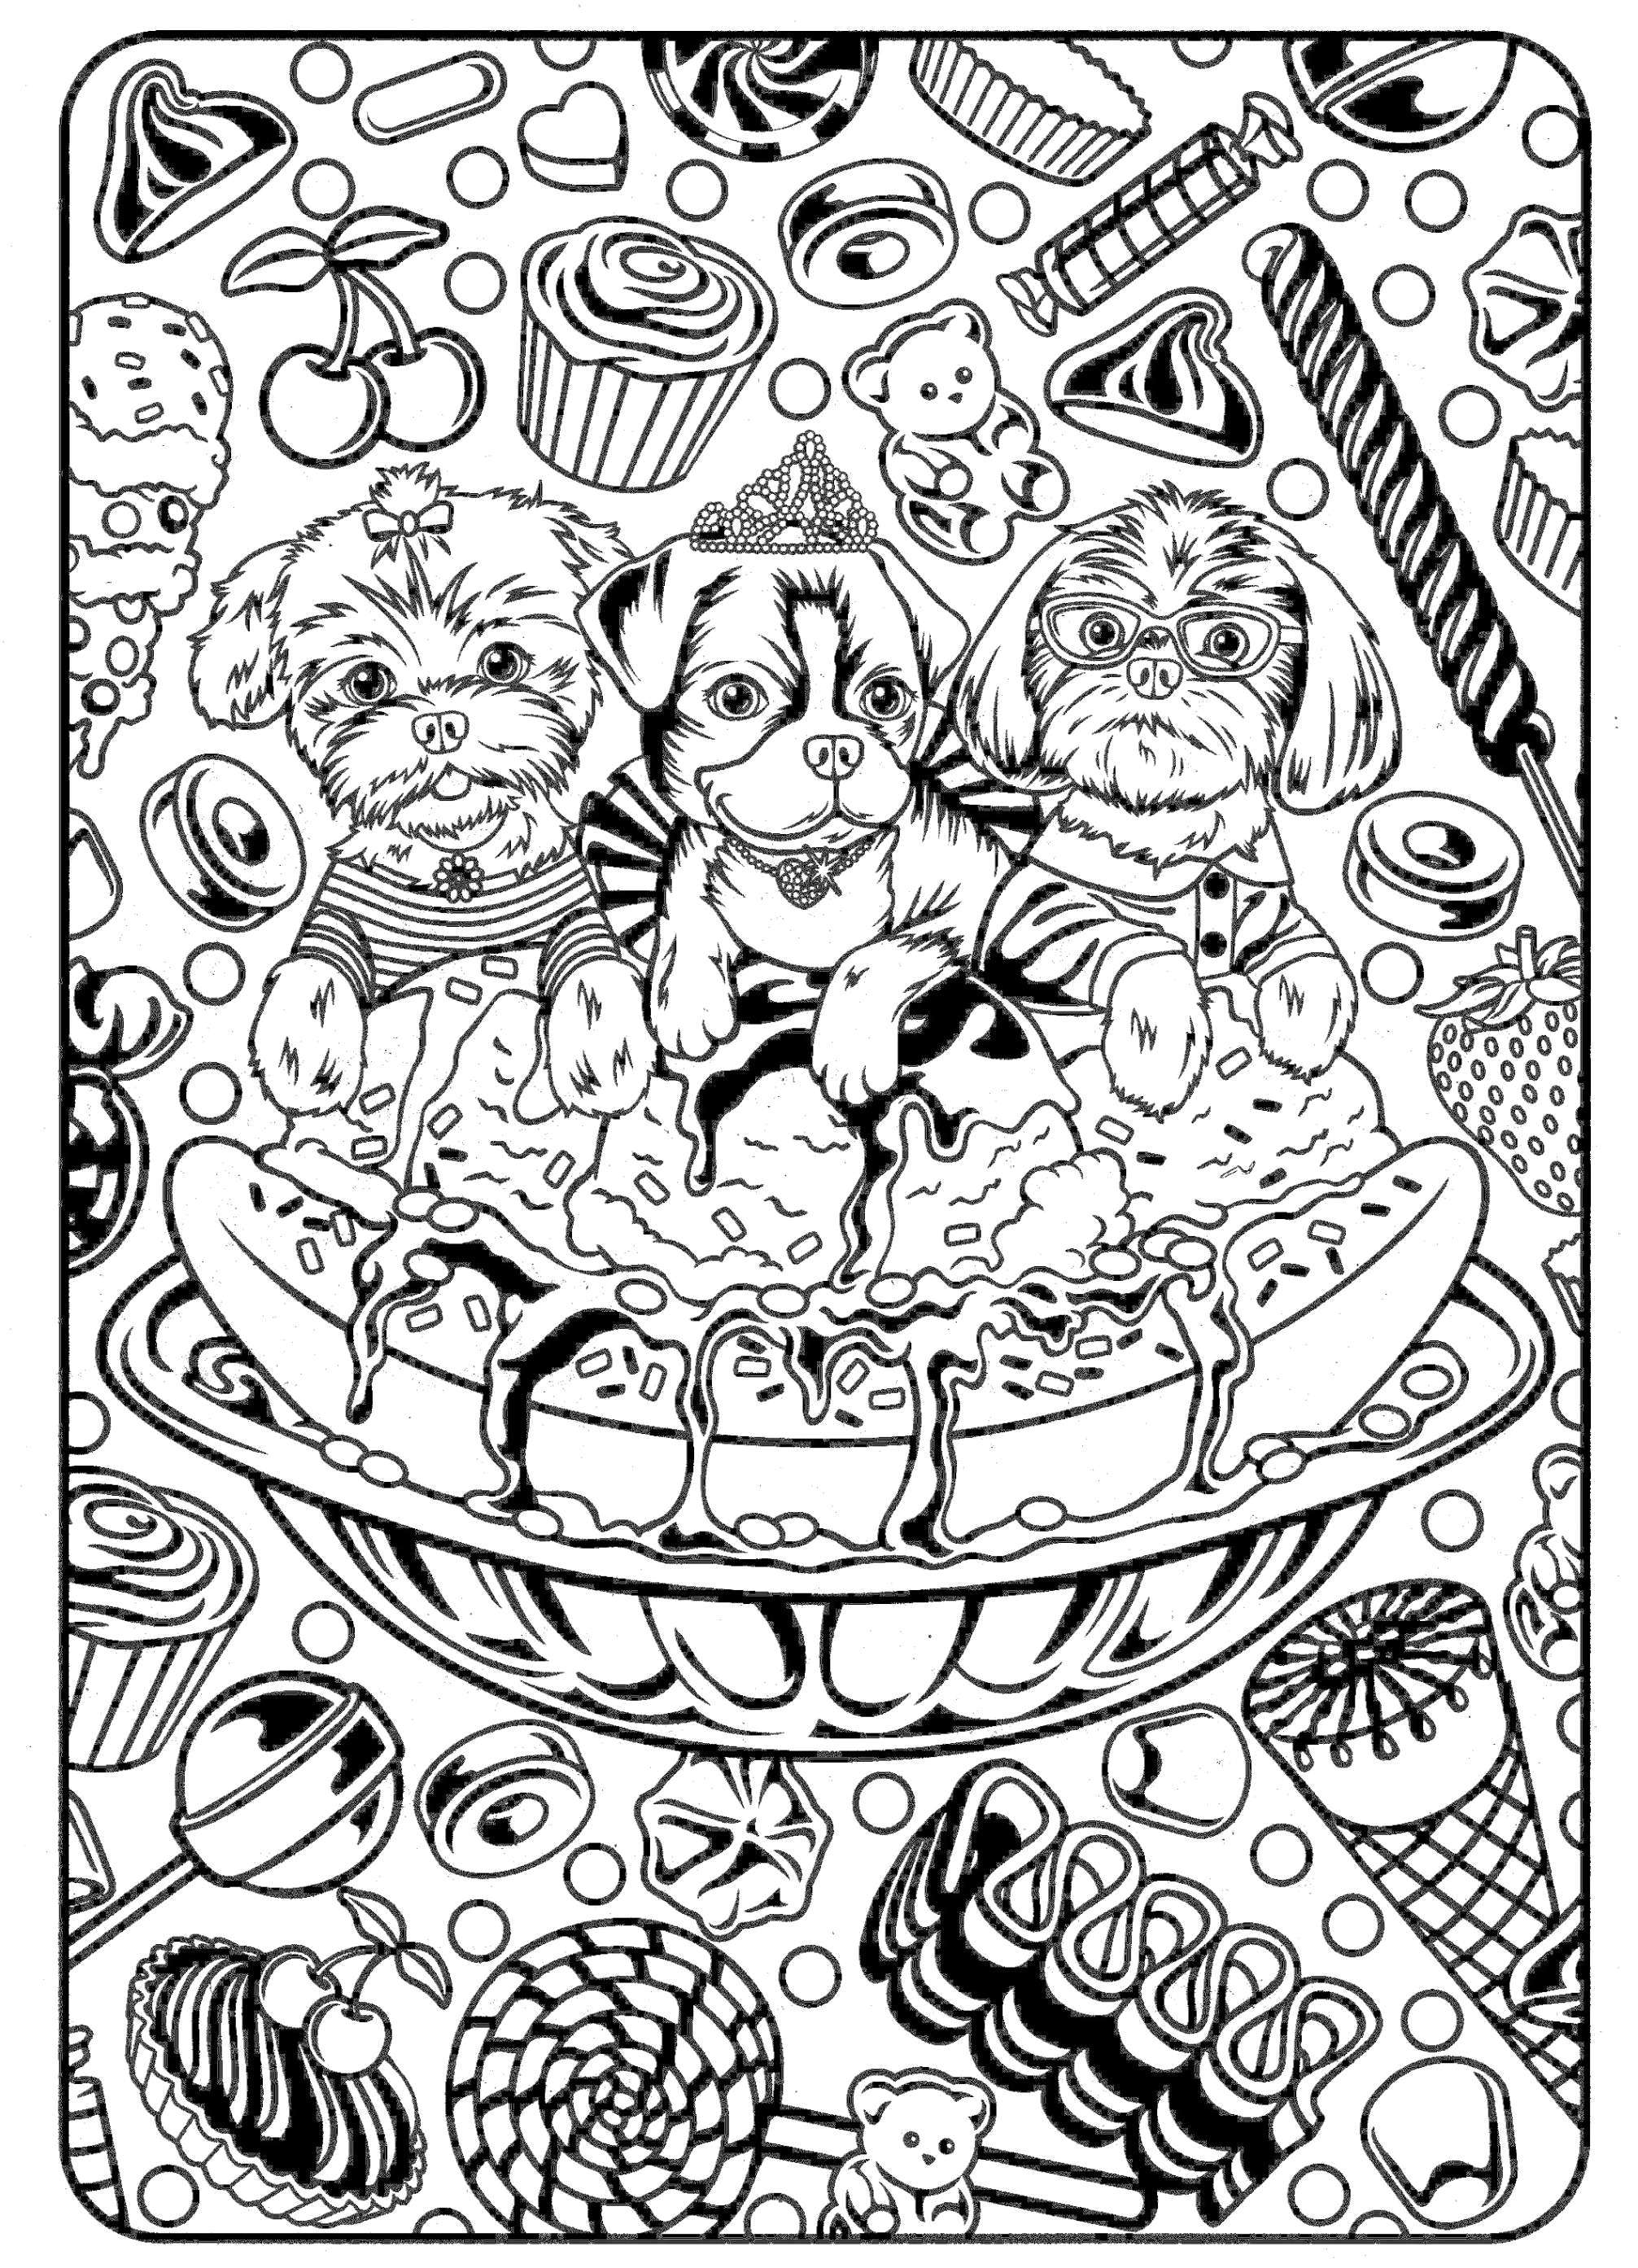 Merry Christmas Colouring Pages With Fall Coloring Adults Best Of 50